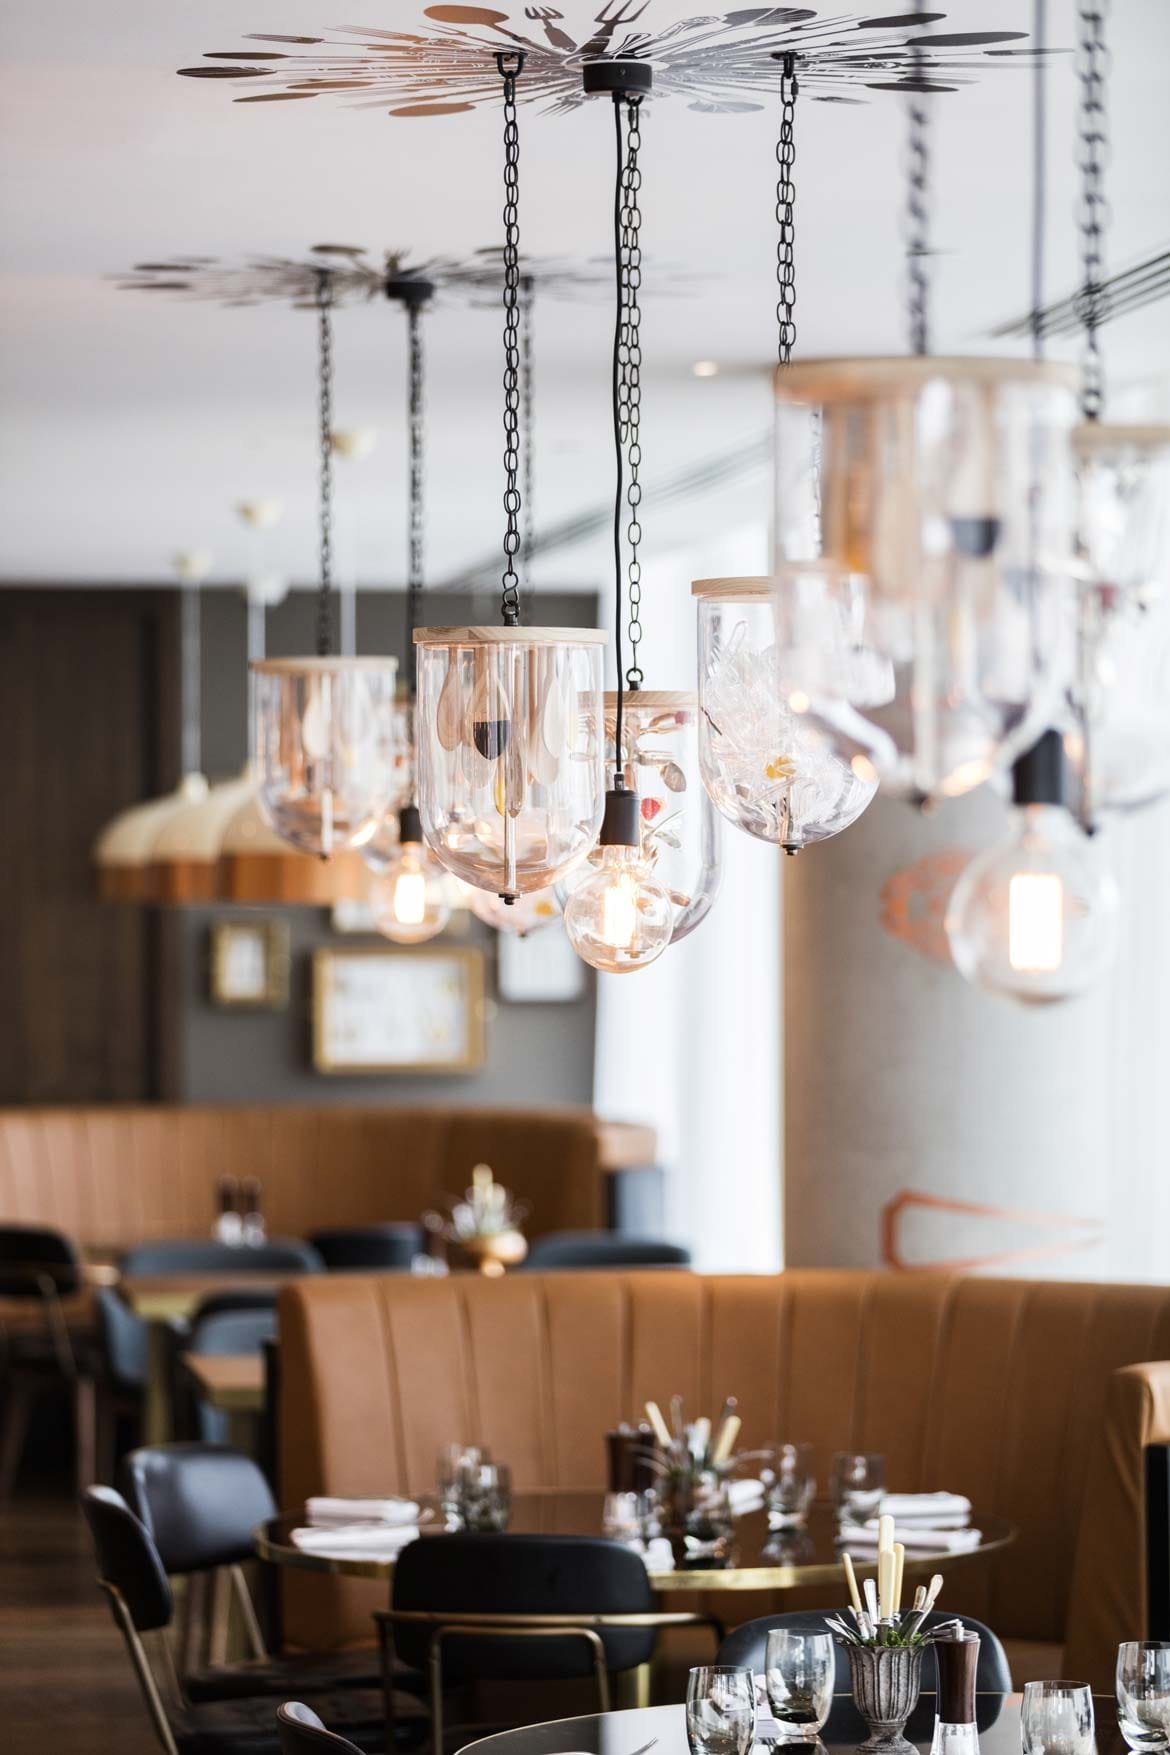 Hilton Bournemouth – Restaurant booths and lighting